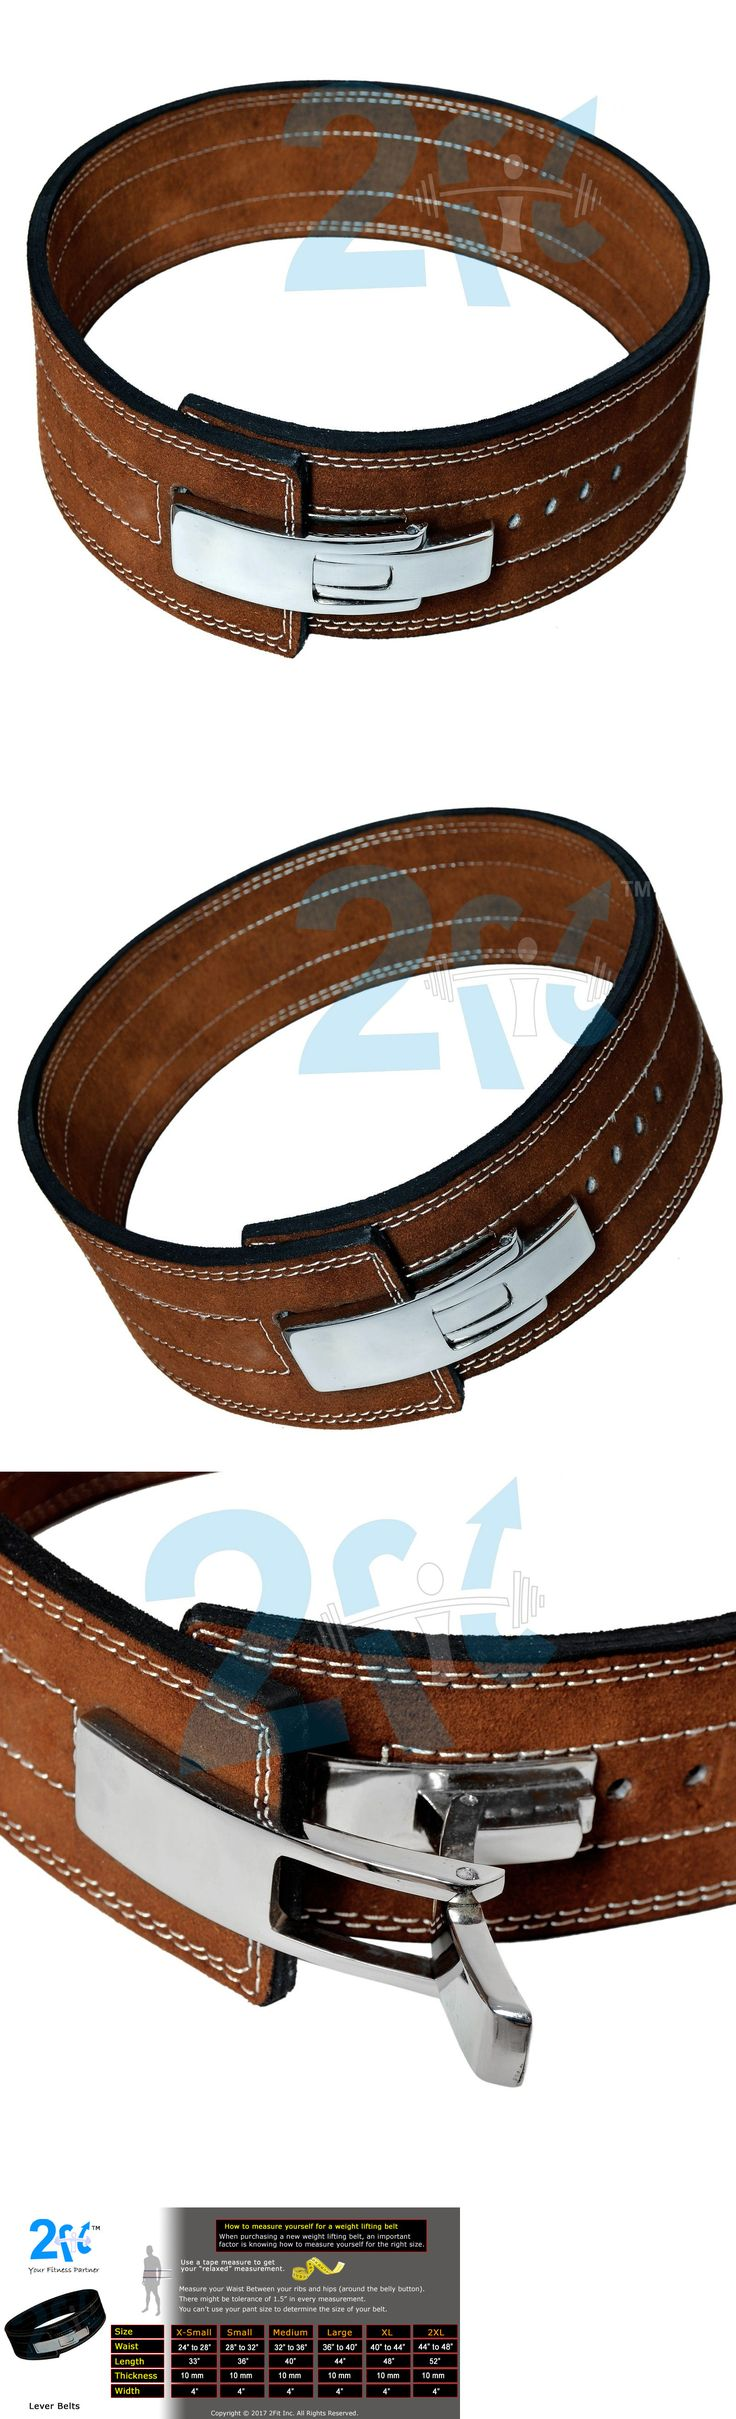 Belts 36155: 2Fit Weight Power Leather Lever Pro Belt 10Mm Gym Training Power Lifting Brown -> BUY IT NOW ONLY: $37.99 on eBay!